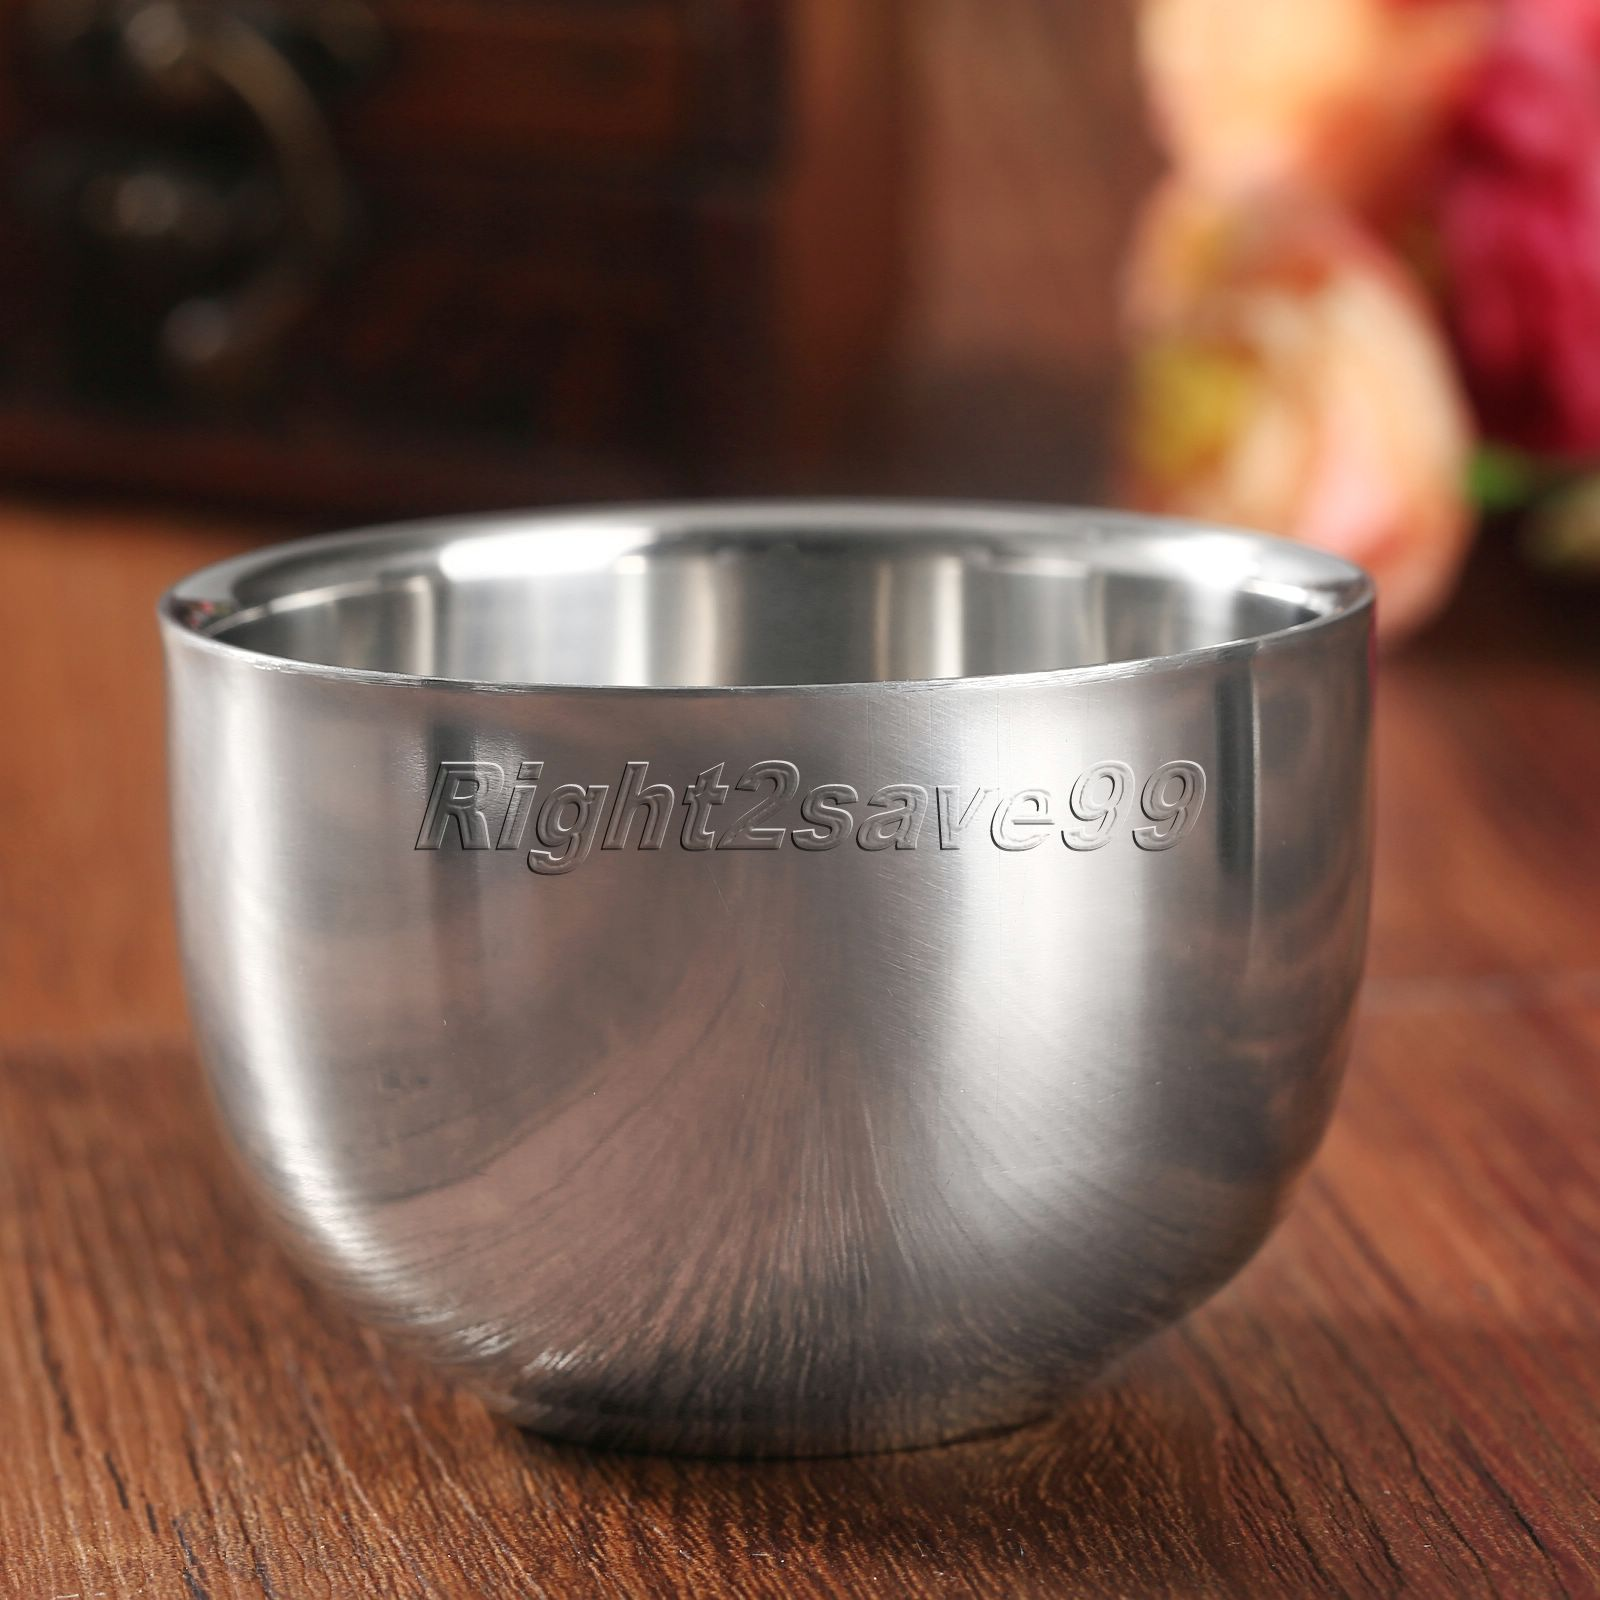 High Quality 7.2cm Fashion Stainless Steel Metal Men Shaving Mug Bowl Cup Shaving Mug Shaving Men's Mug Bowl Cup For Shave Brush